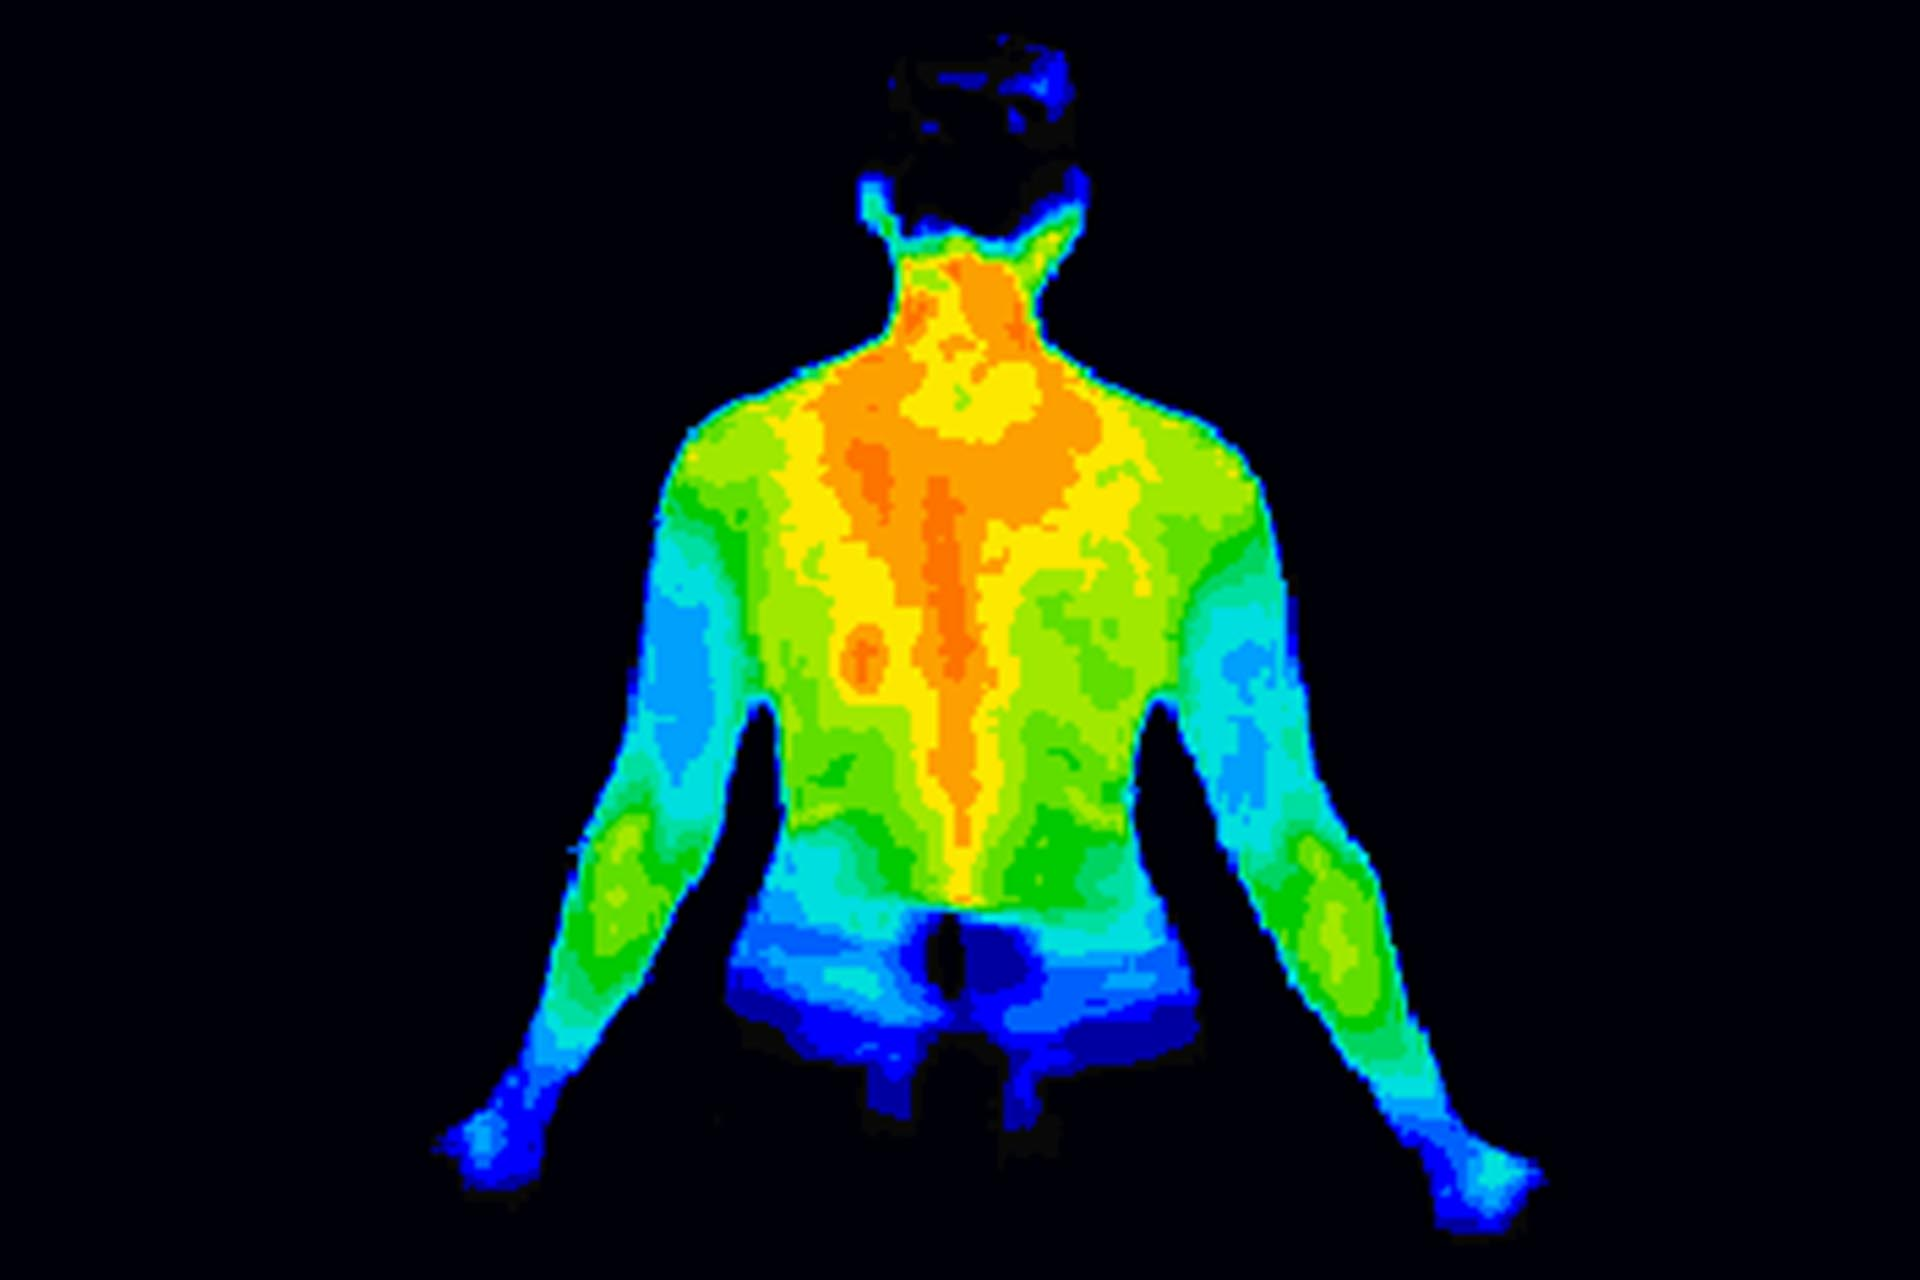 Thermographic image of the body showing need for vulnerability scanning and penetration testing